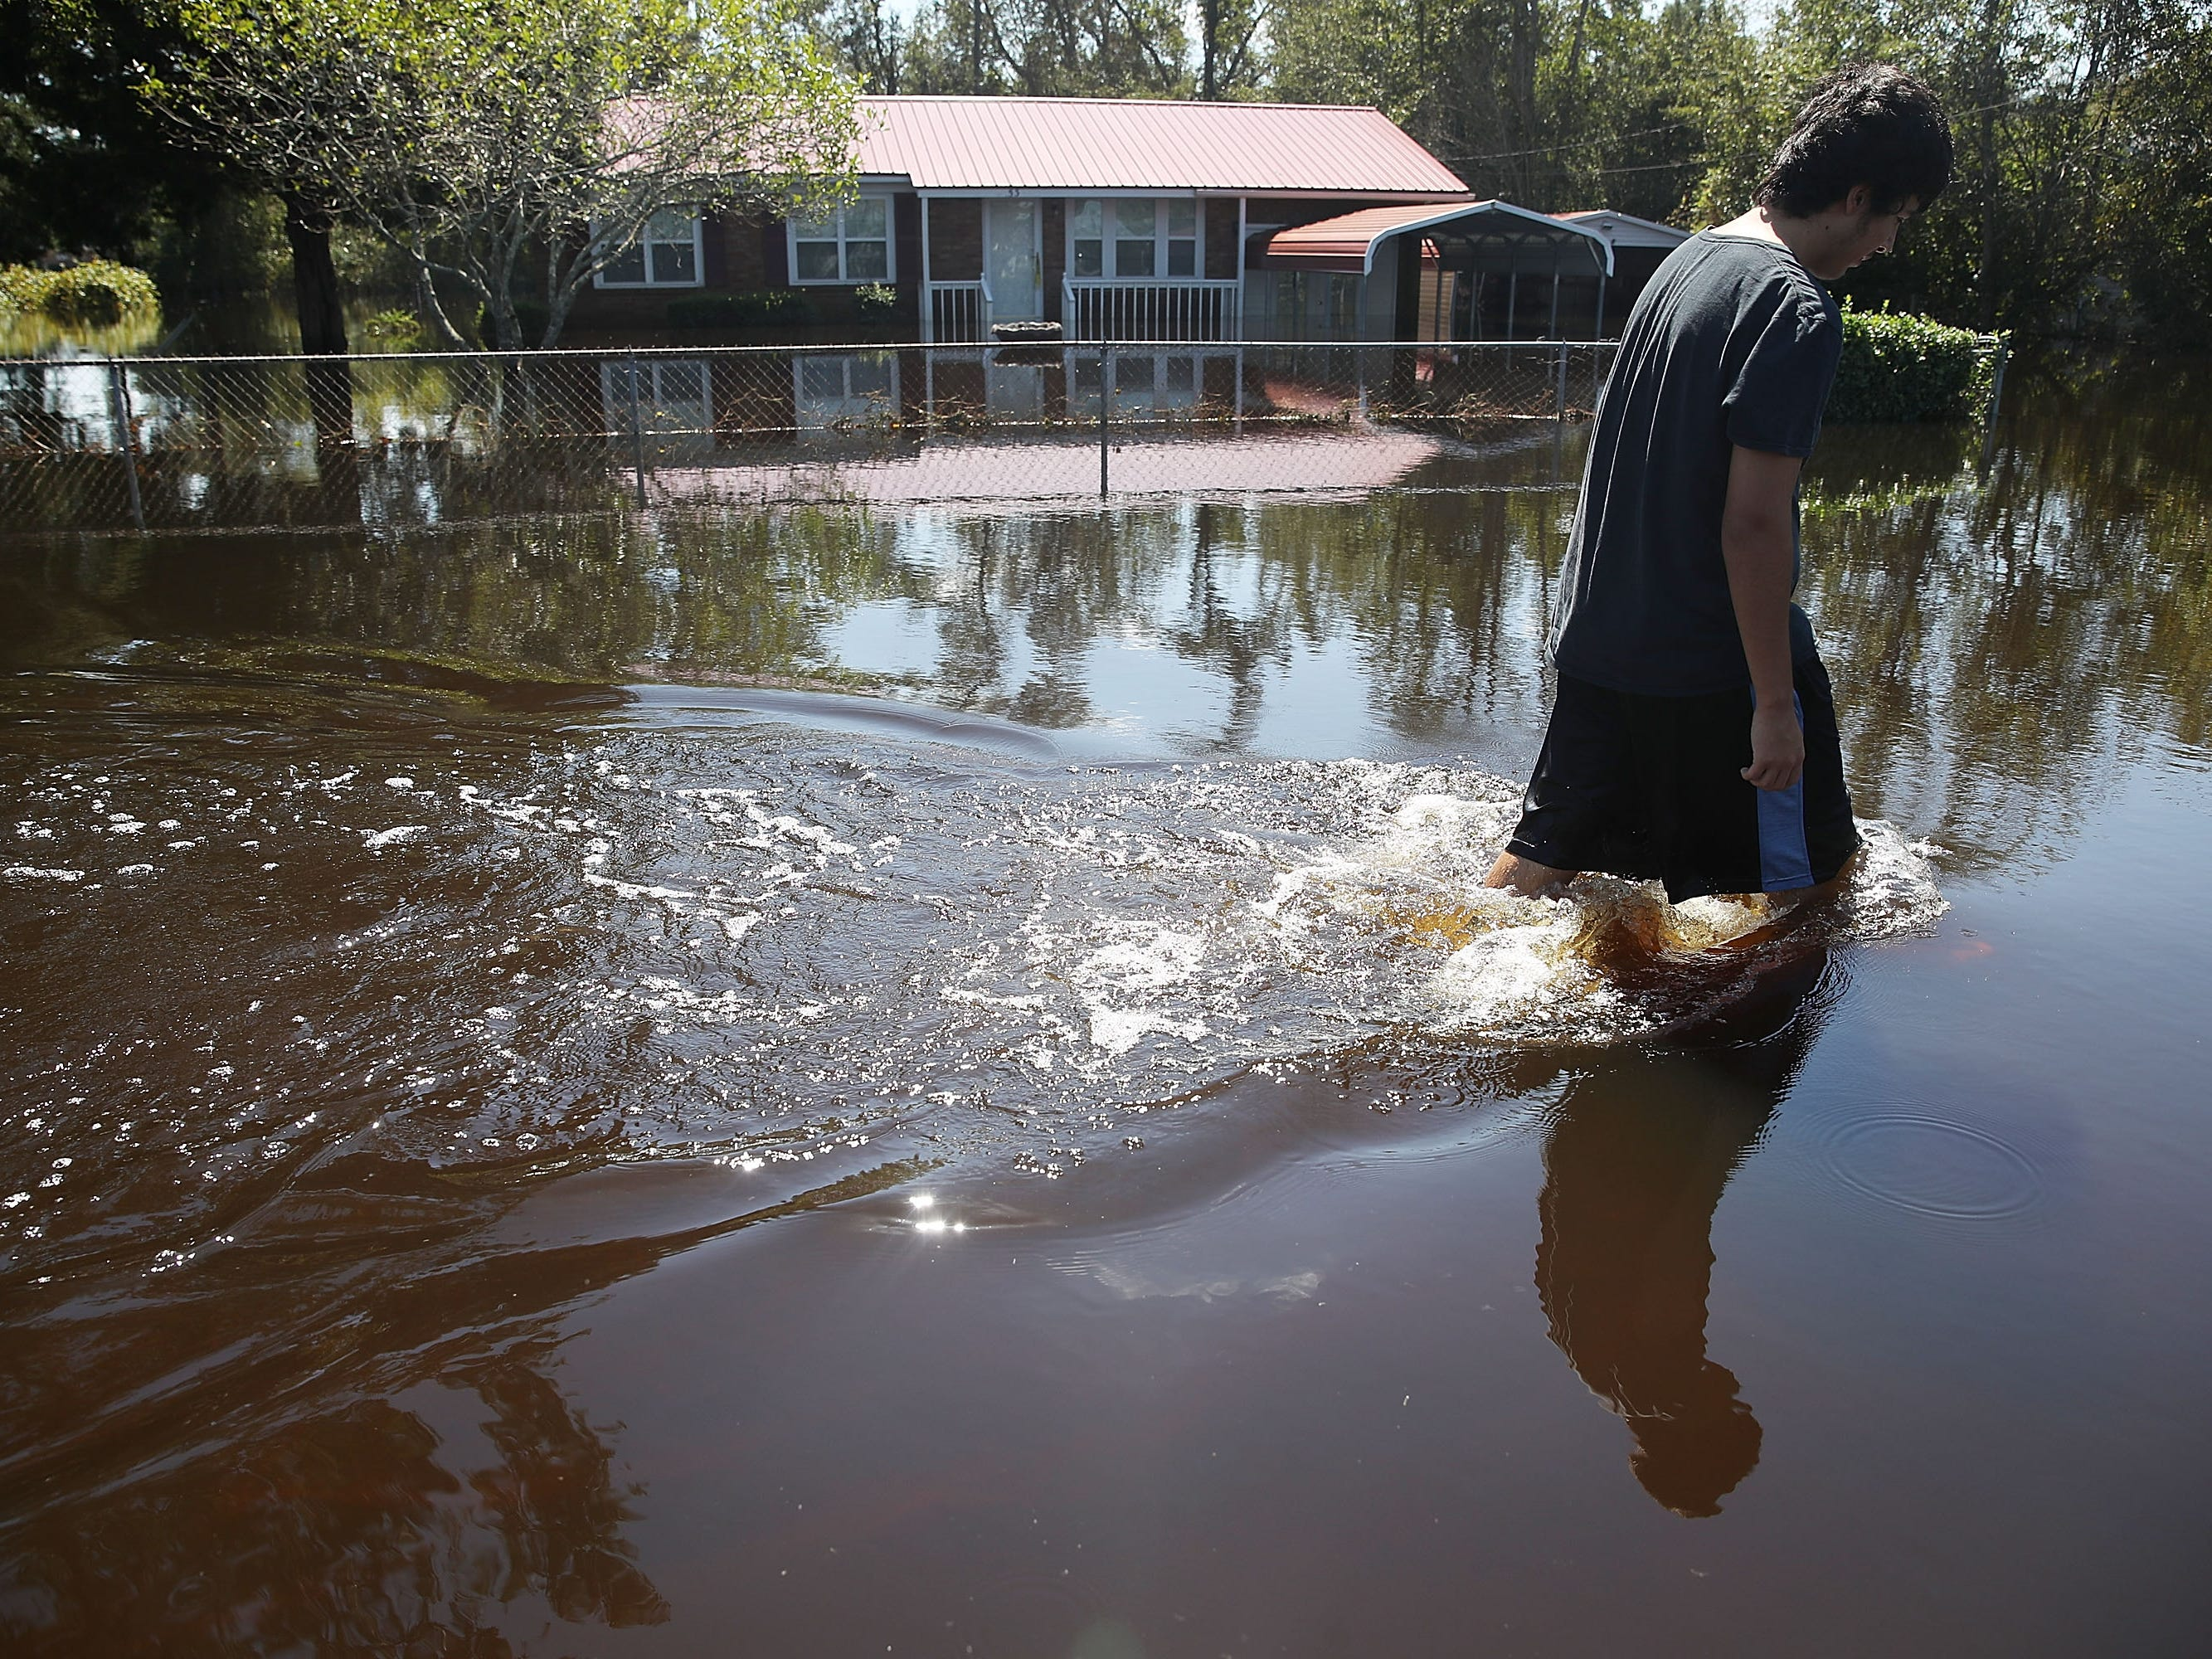 Jovani Quintano walks through a flooded neighborhood after heavy rains brought on by Hurricane Florence on Sept. 19, 2018, in Lumberton, N.C.